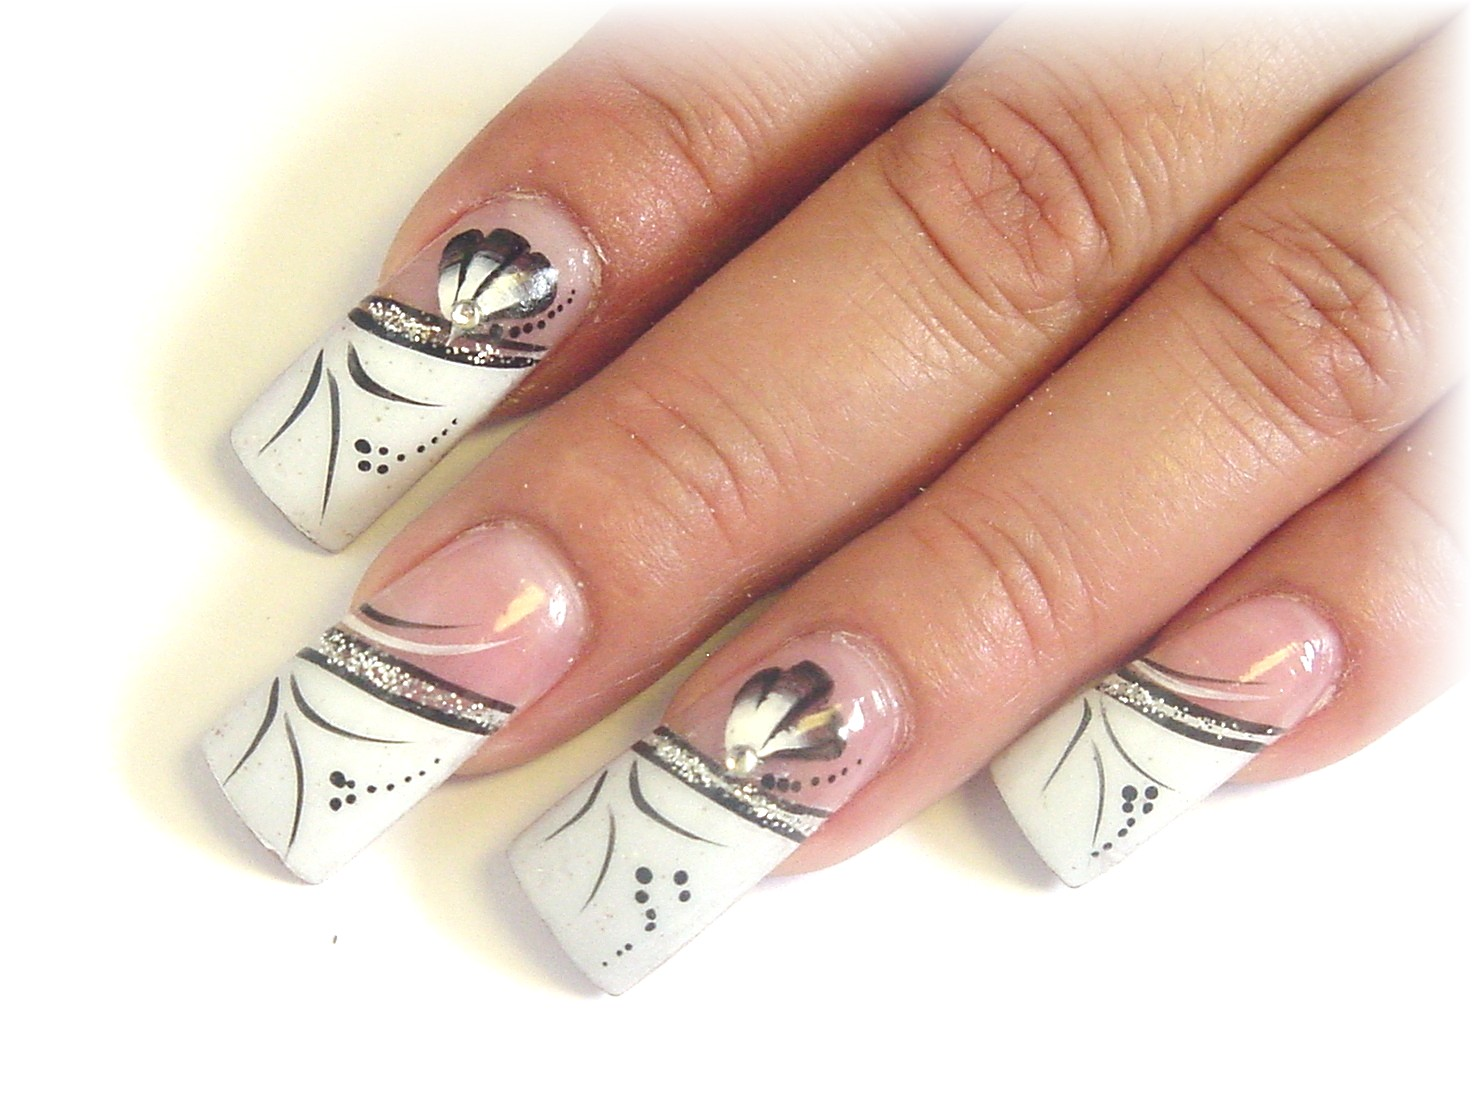 nail art design ideas - Nail Polish Design Ideas